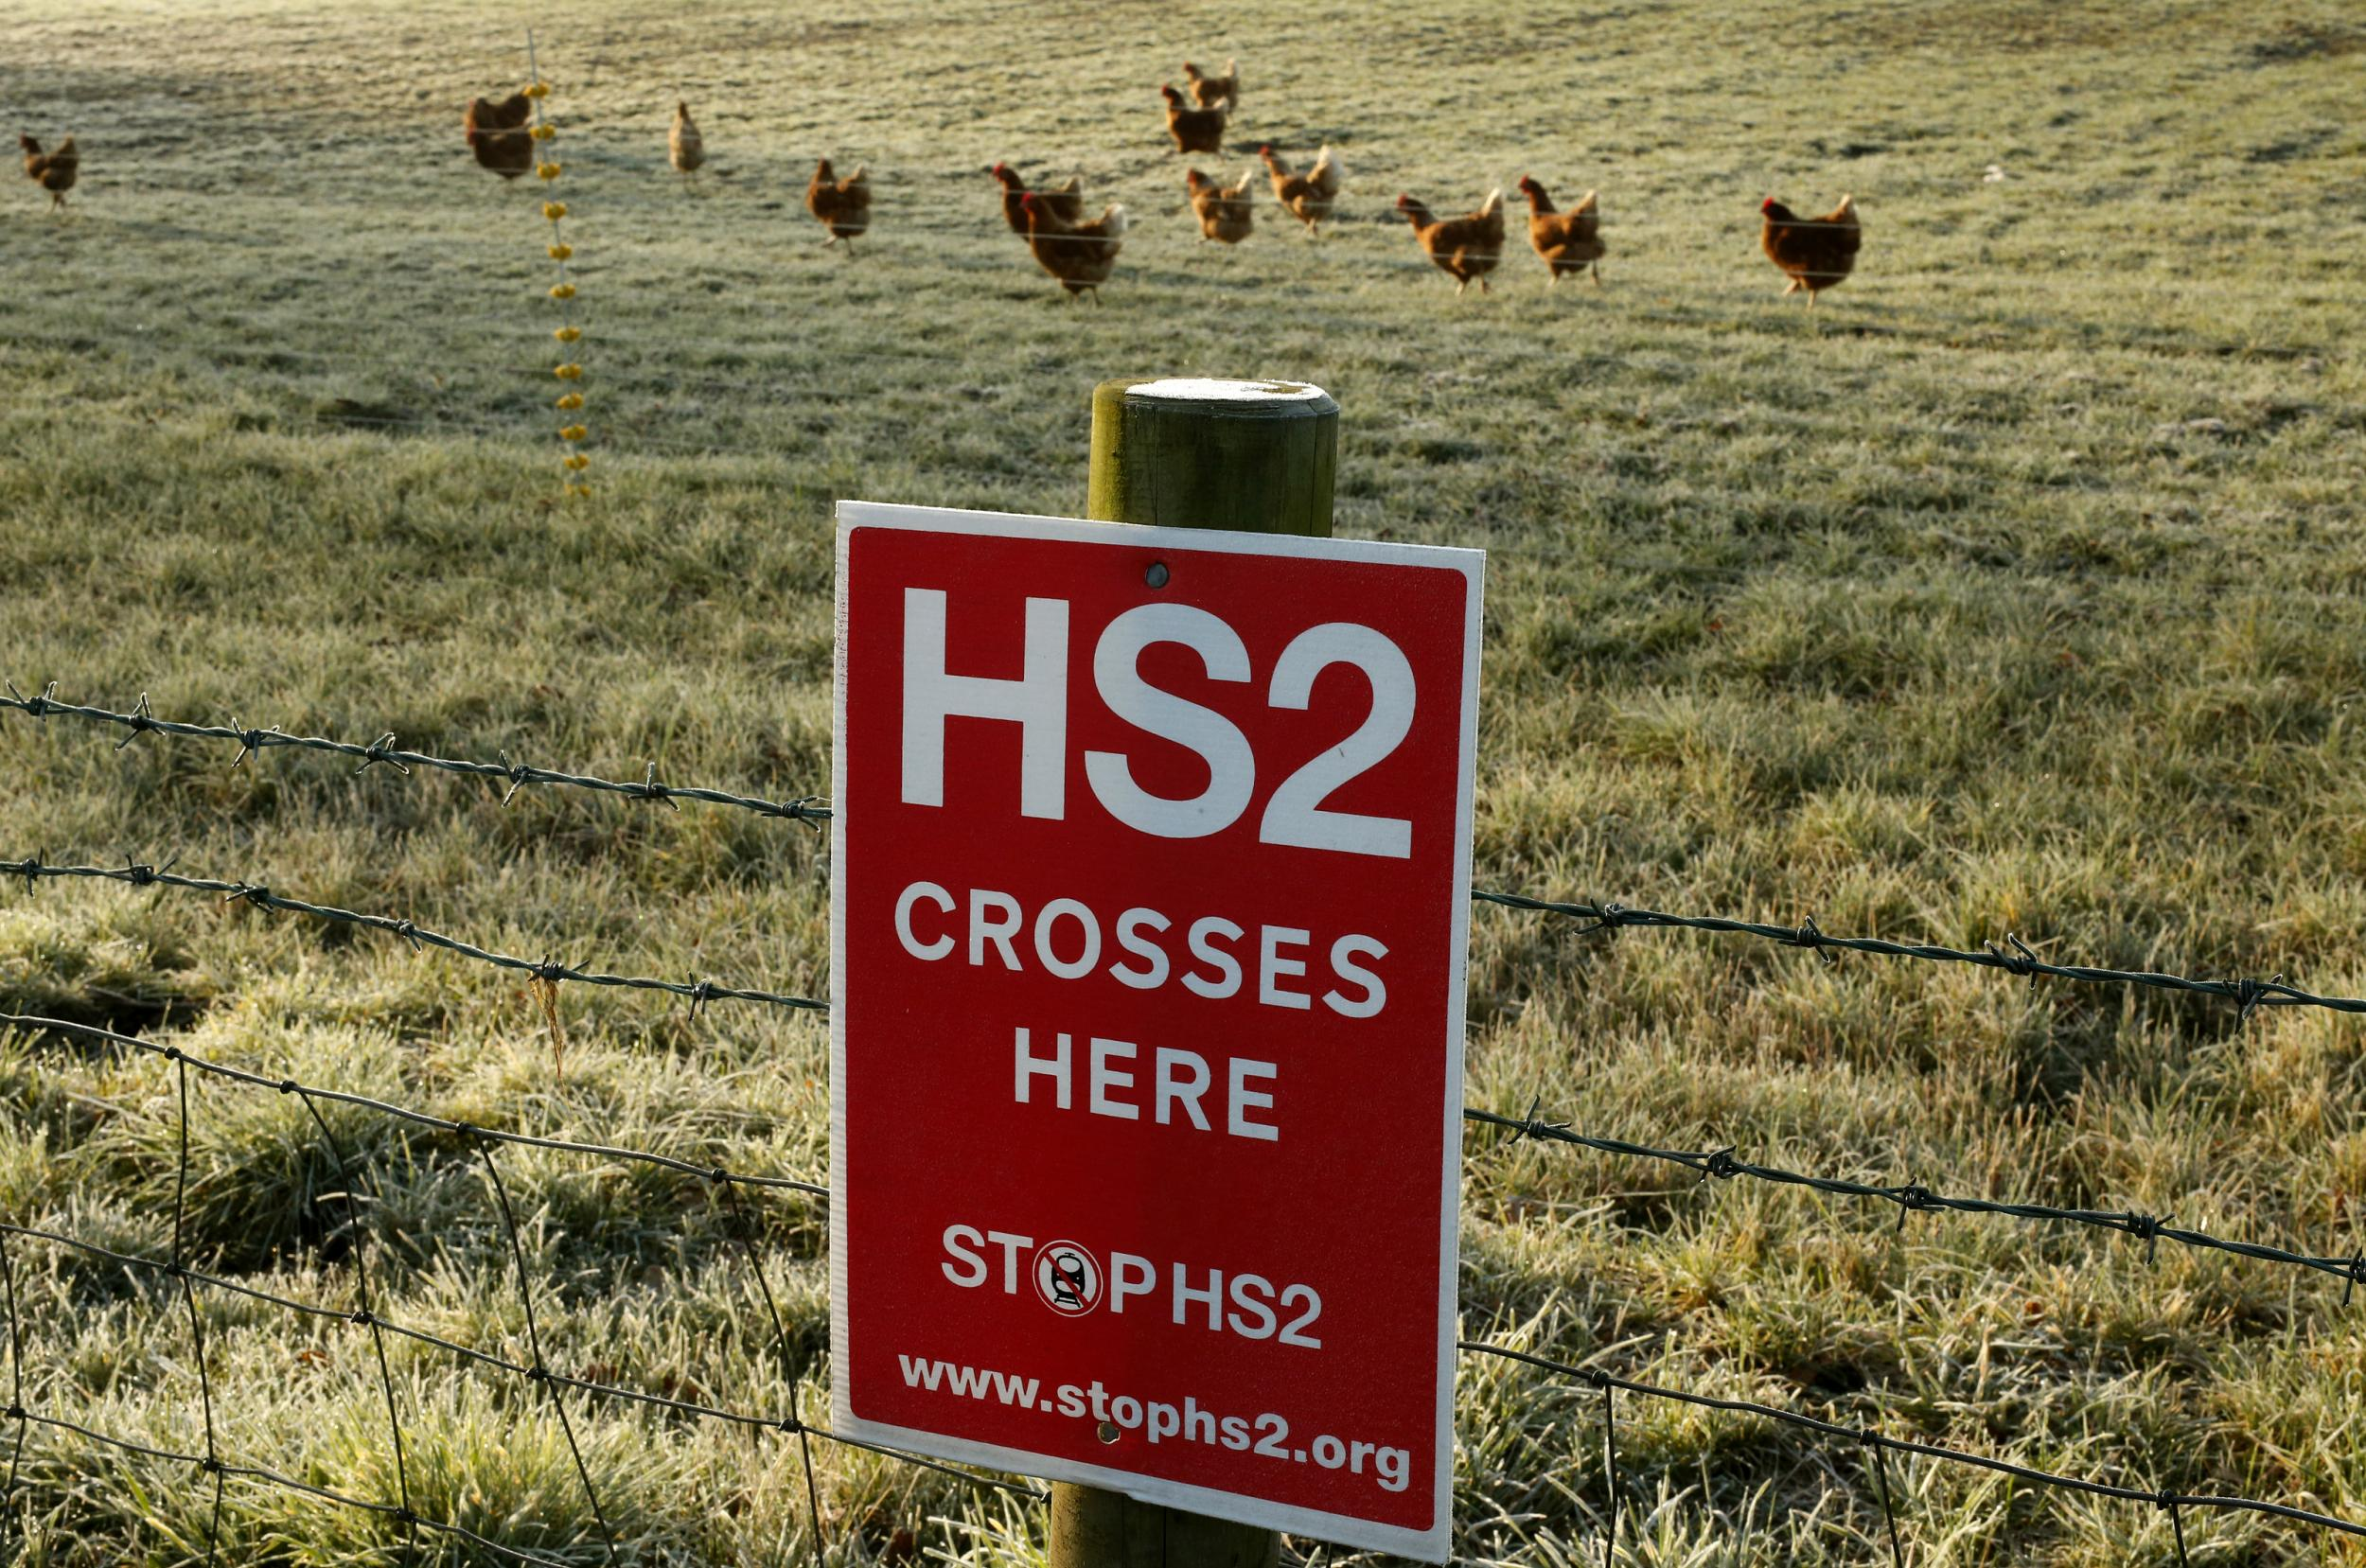 Now we learn that HS2 will cause 'far worse' damage than expected, it confirms this is a flawed project